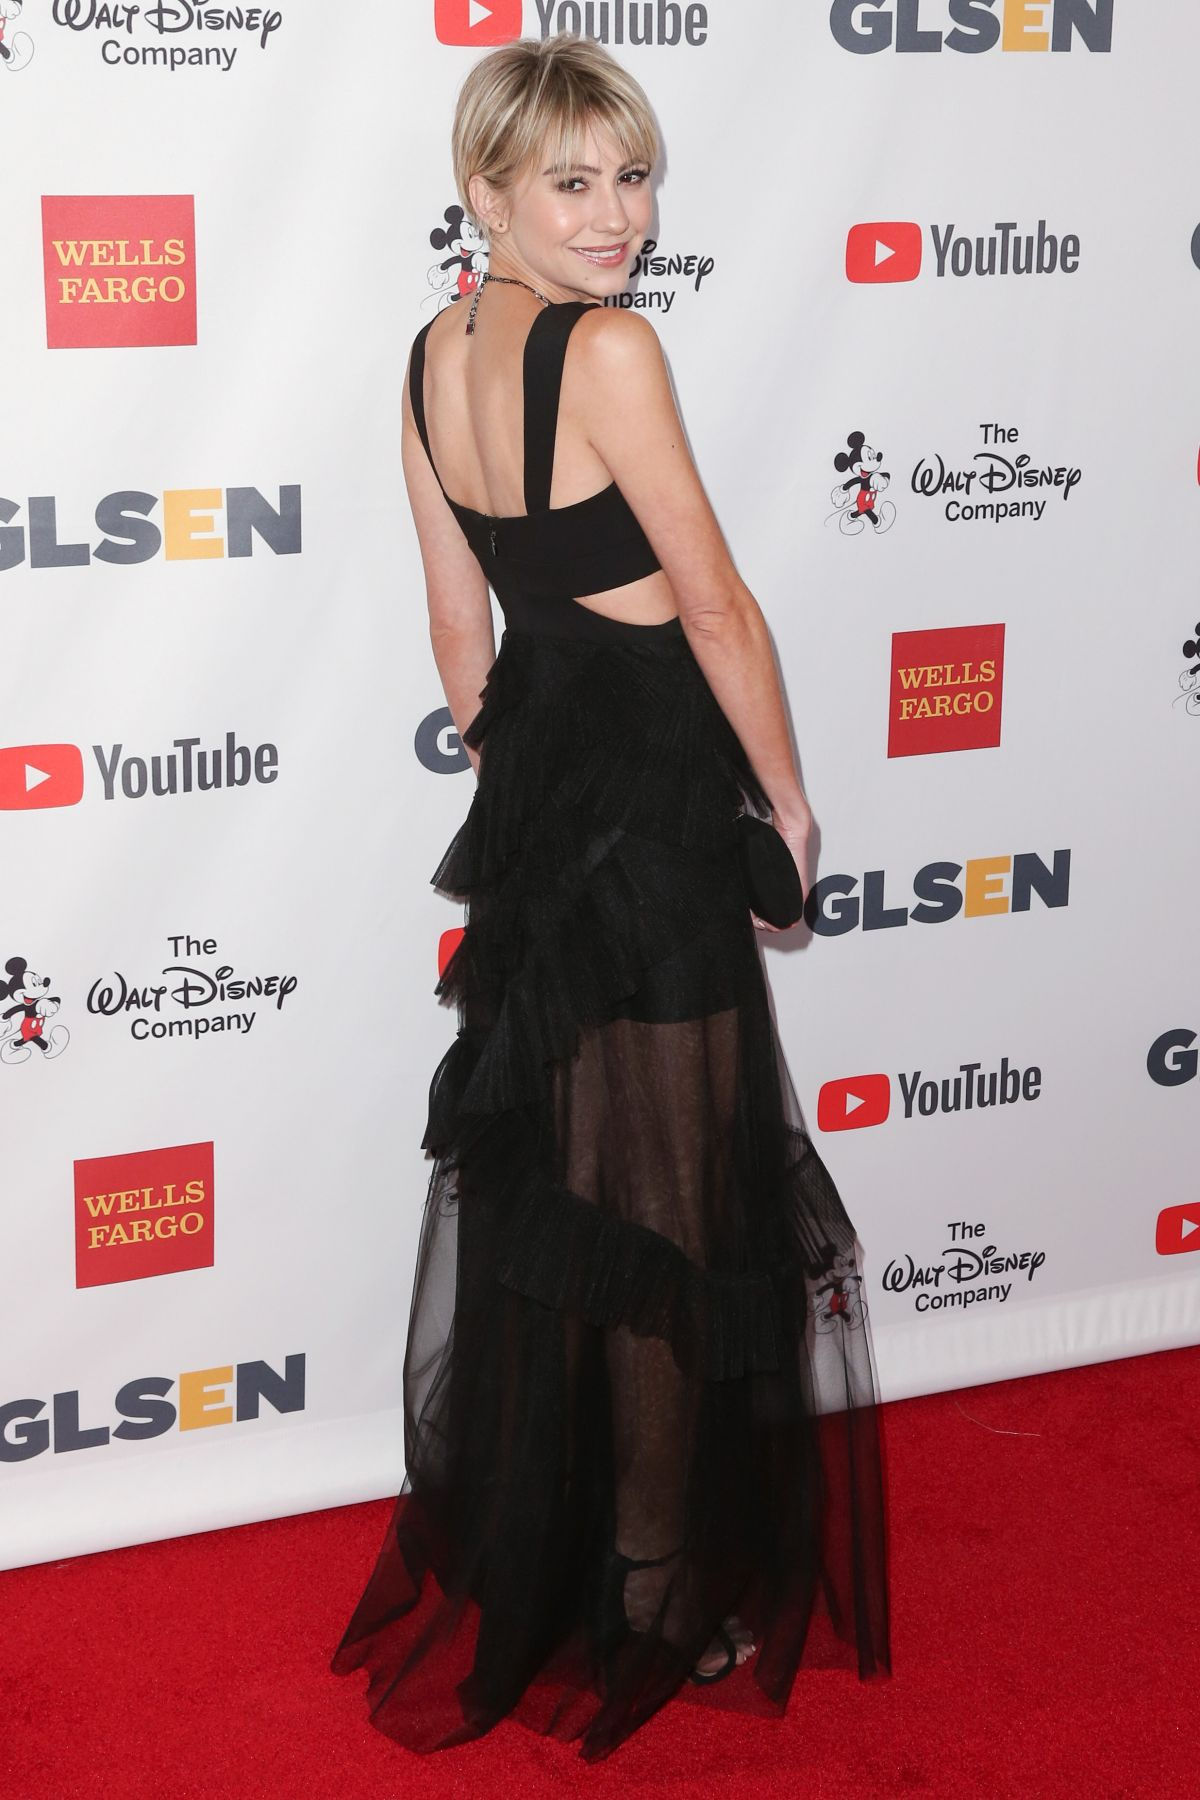 CHELSEA KANE at Glsen Respect Awards in Los Angeles 10/20 ...